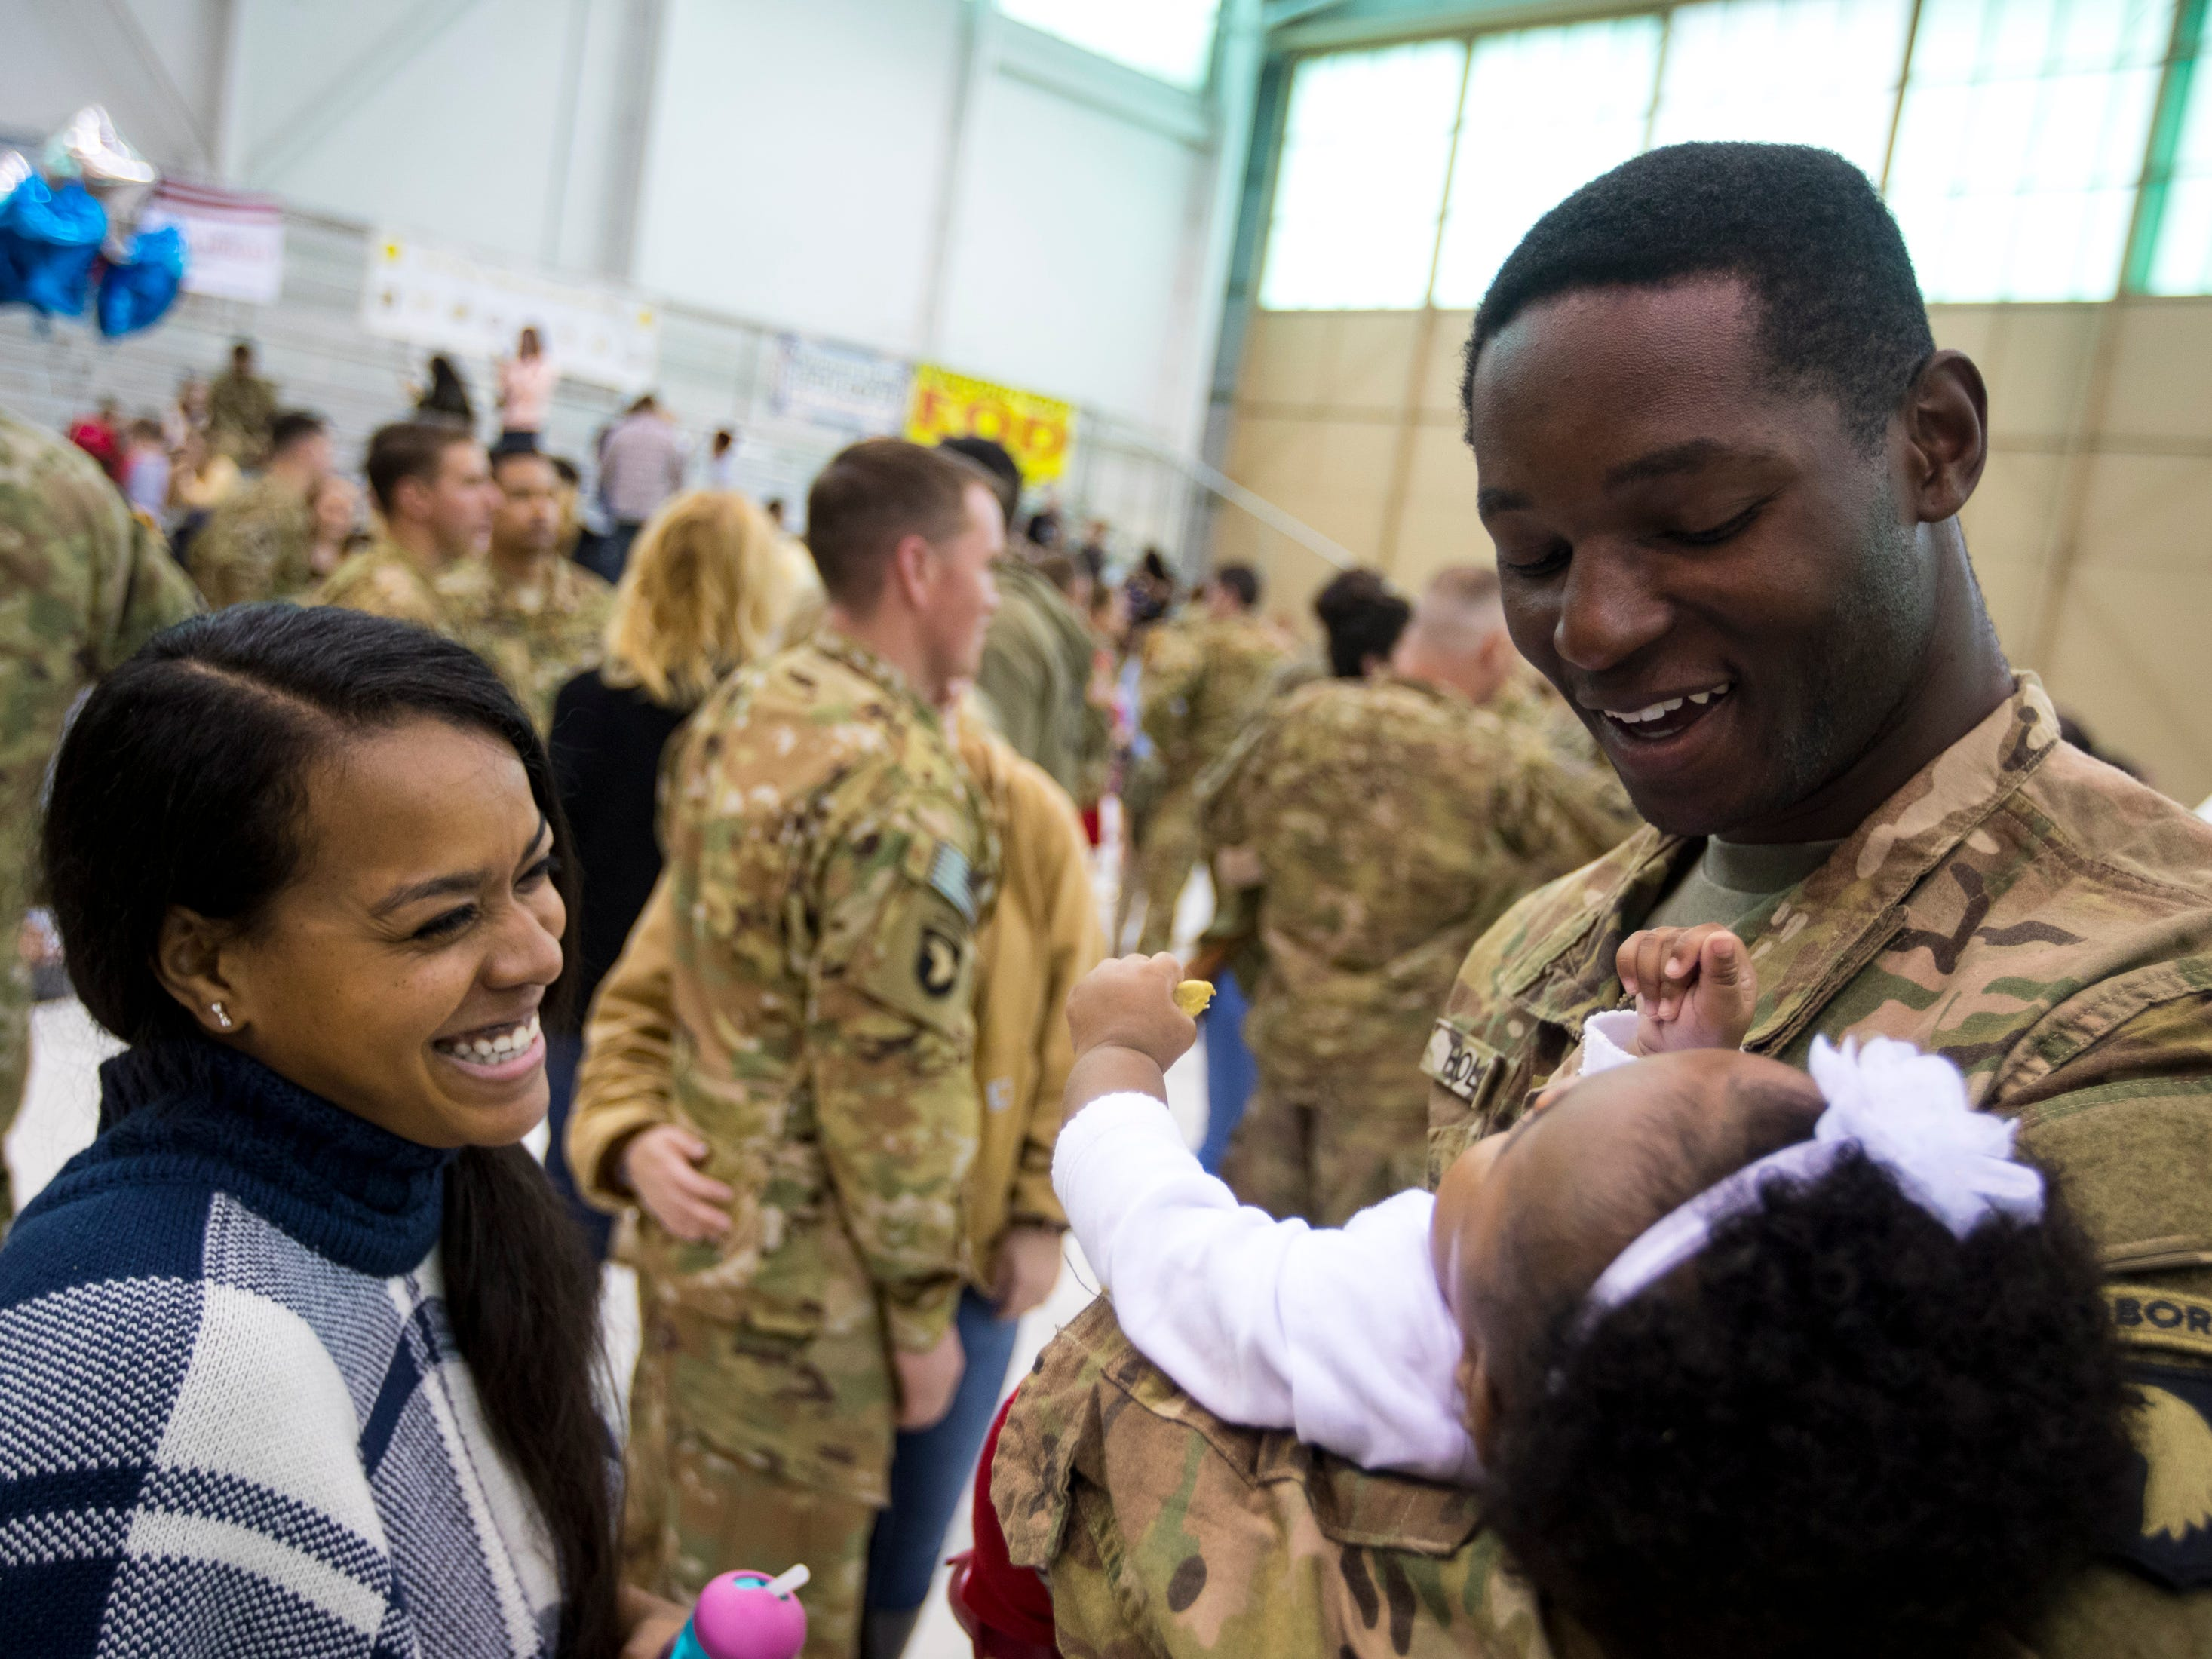 Wayne Hollis holds his daughter Aleighsia Hollis, 7 months, for the first time during the welcome home ceremony for members of the 101st Combat Aviation Brigade at Fort Campbell in Clarksville on Tuesday, Feb. 5, 2019. The soldiers were returning from a nine-month deployment to Afghanistan.